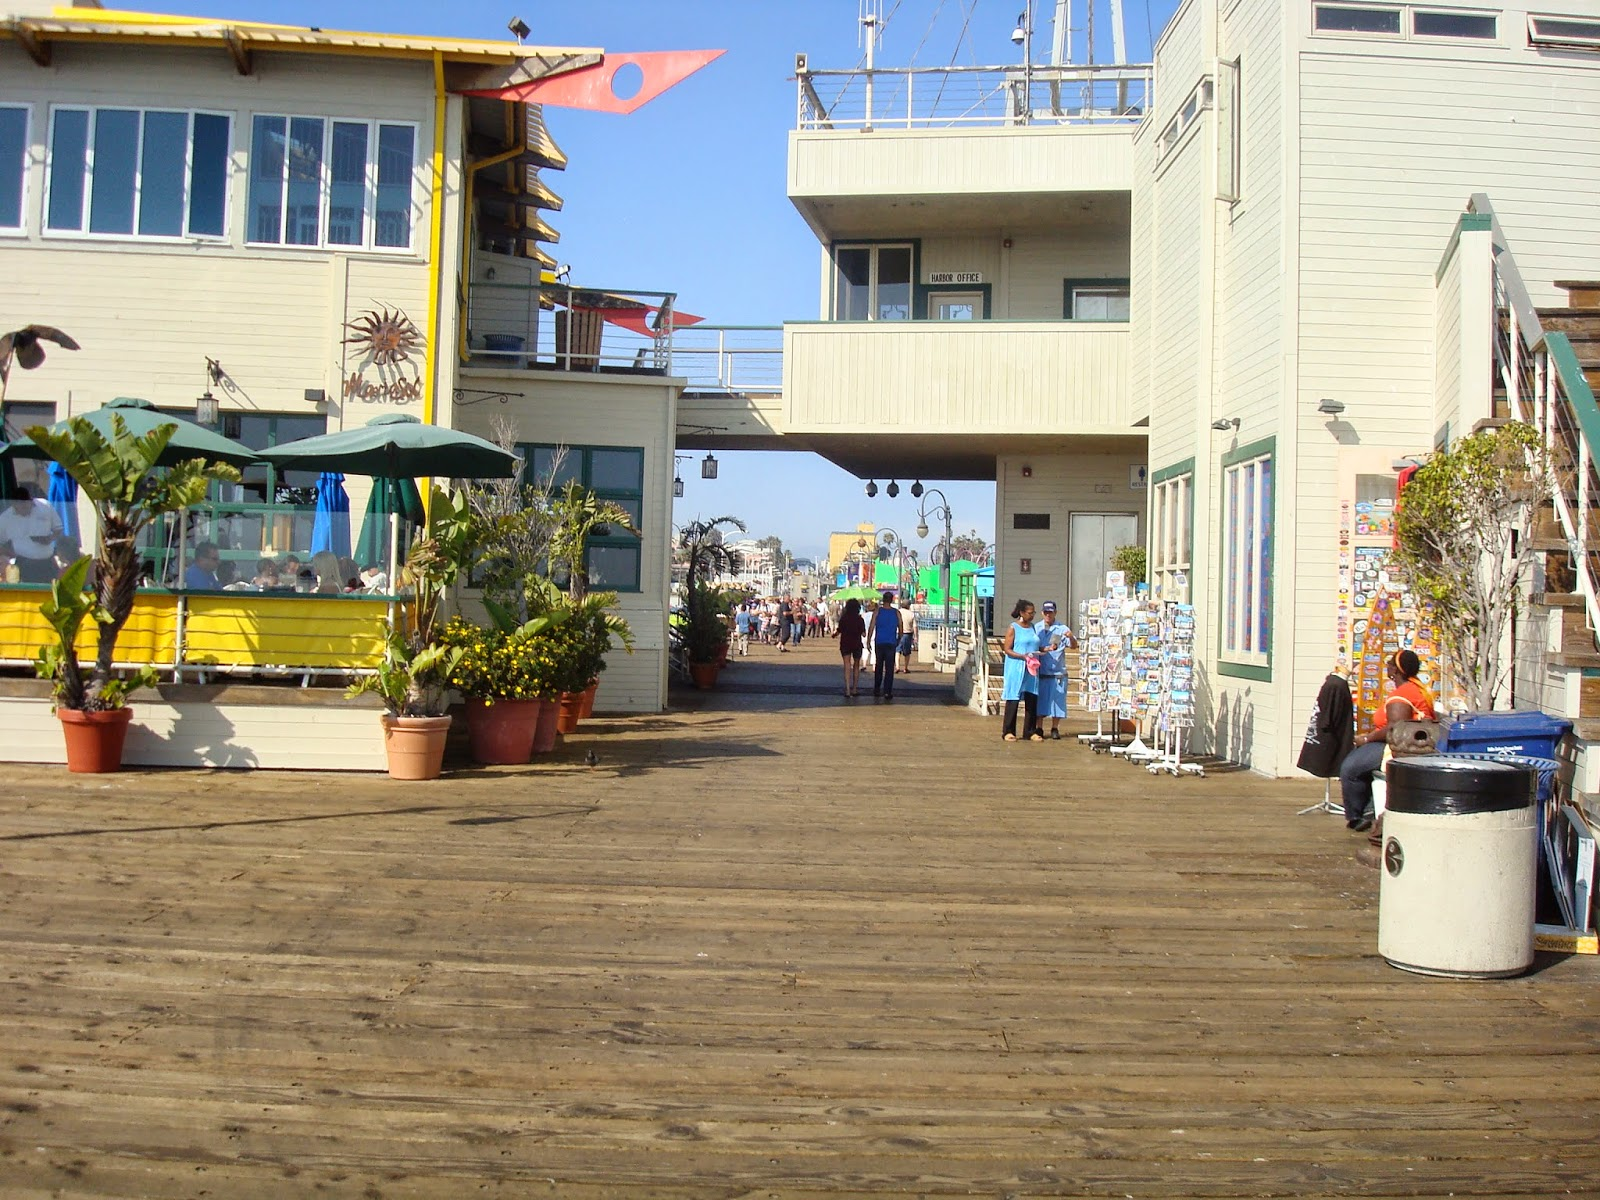 Los Angeles - Santa Monica et Venice Beach